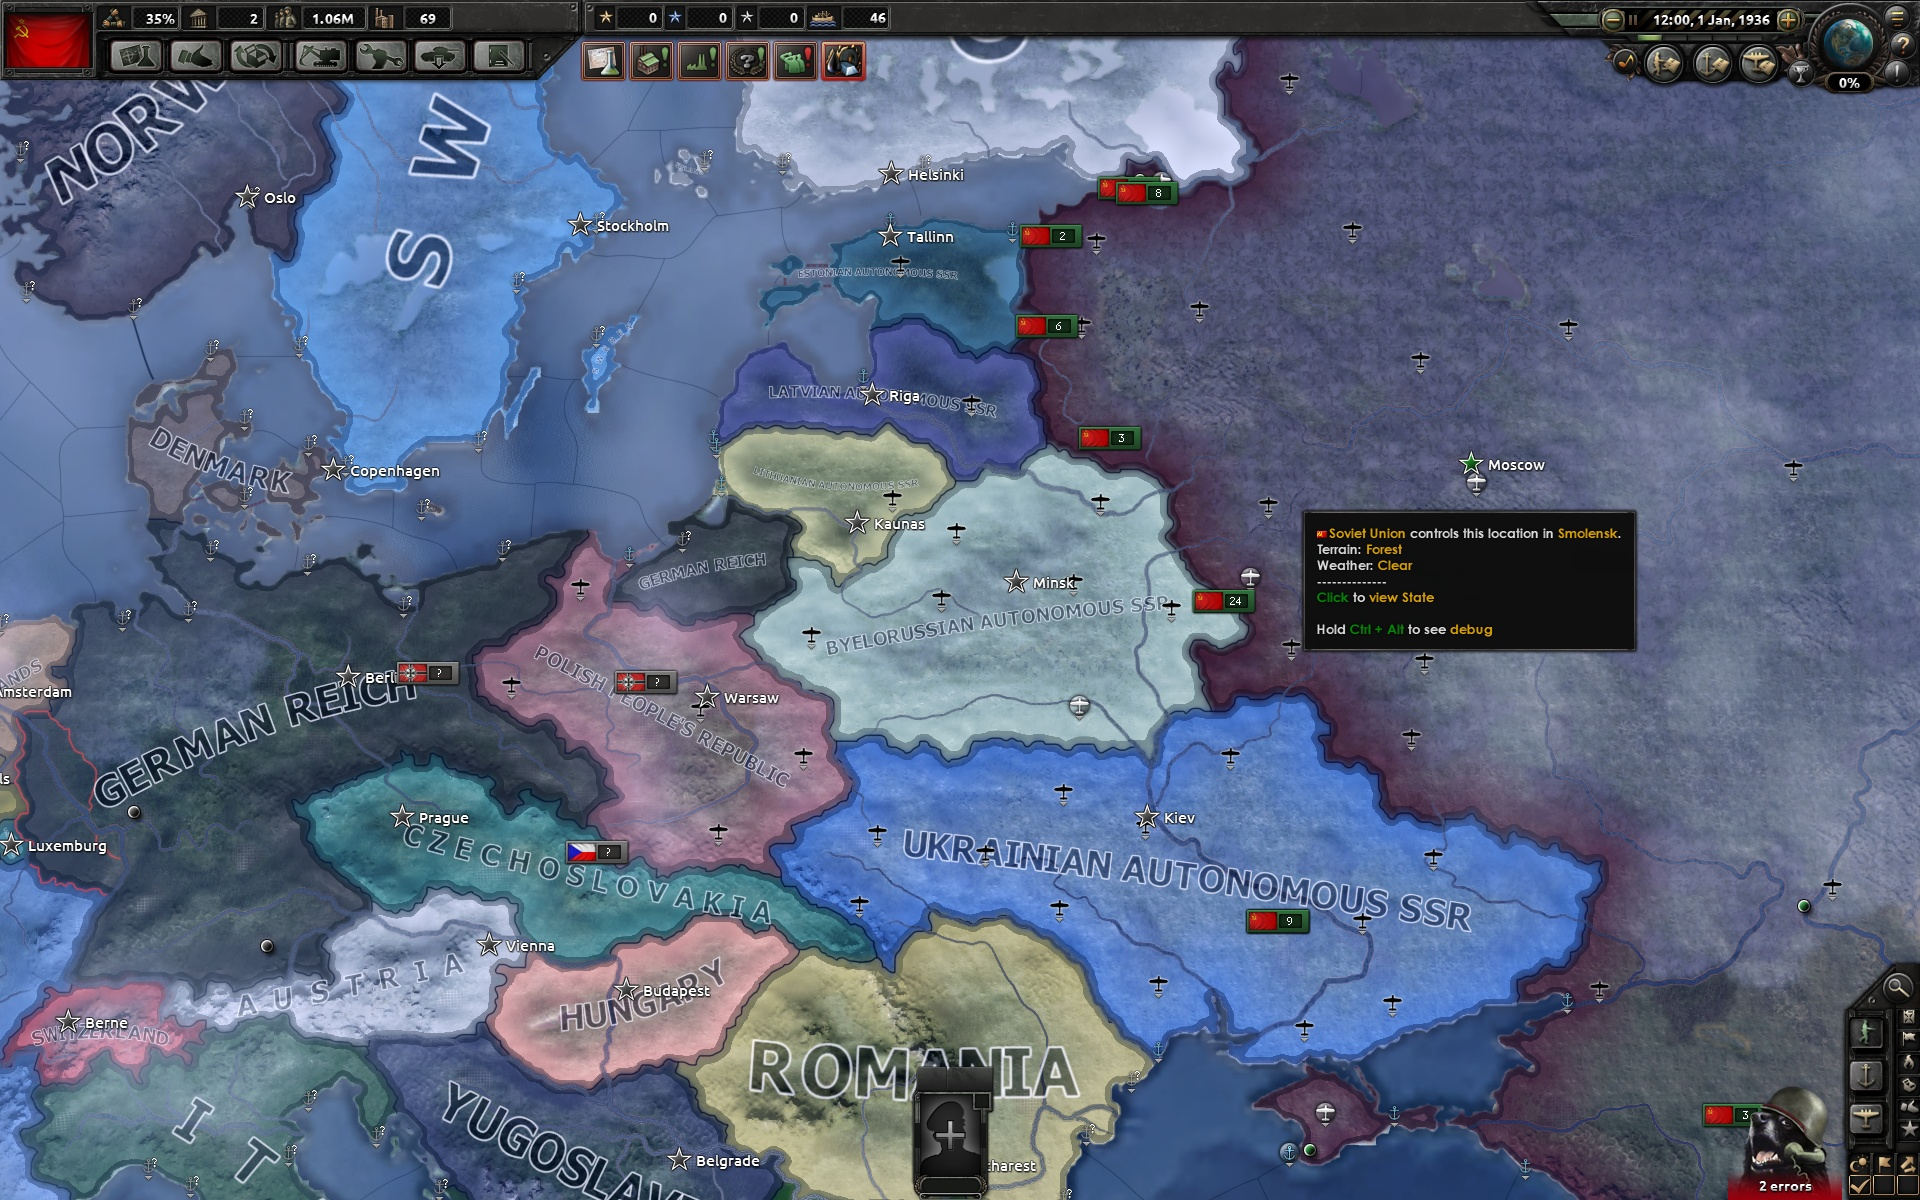 HOI4 Dev Diary - Cosmetic tags, art, gameplay and AI